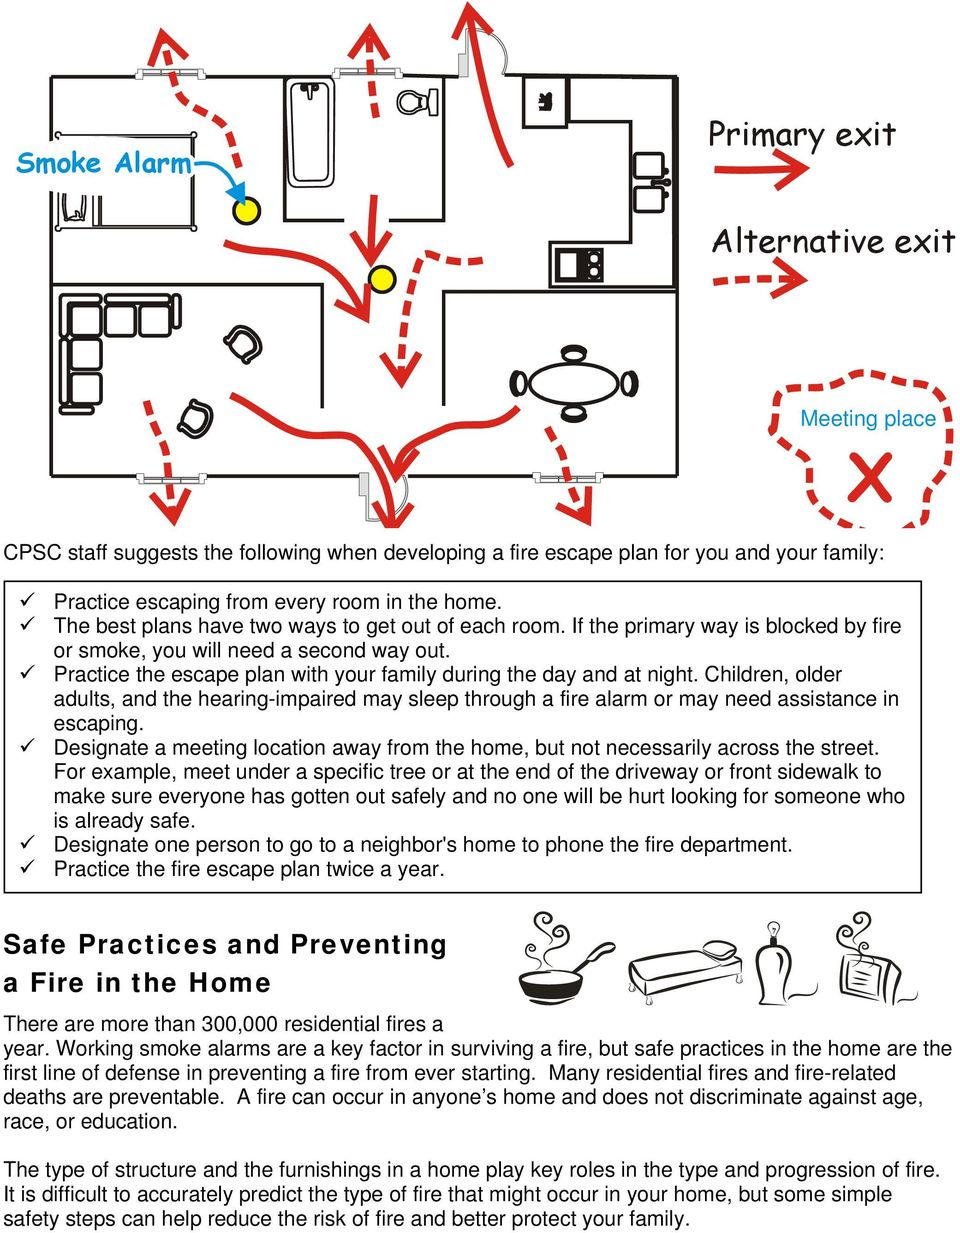 Practice the escape plan with your family during the day and at night. Children, older adults, and the hearing-impaired may sleep through a fire alarm or may need assistance in escaping.